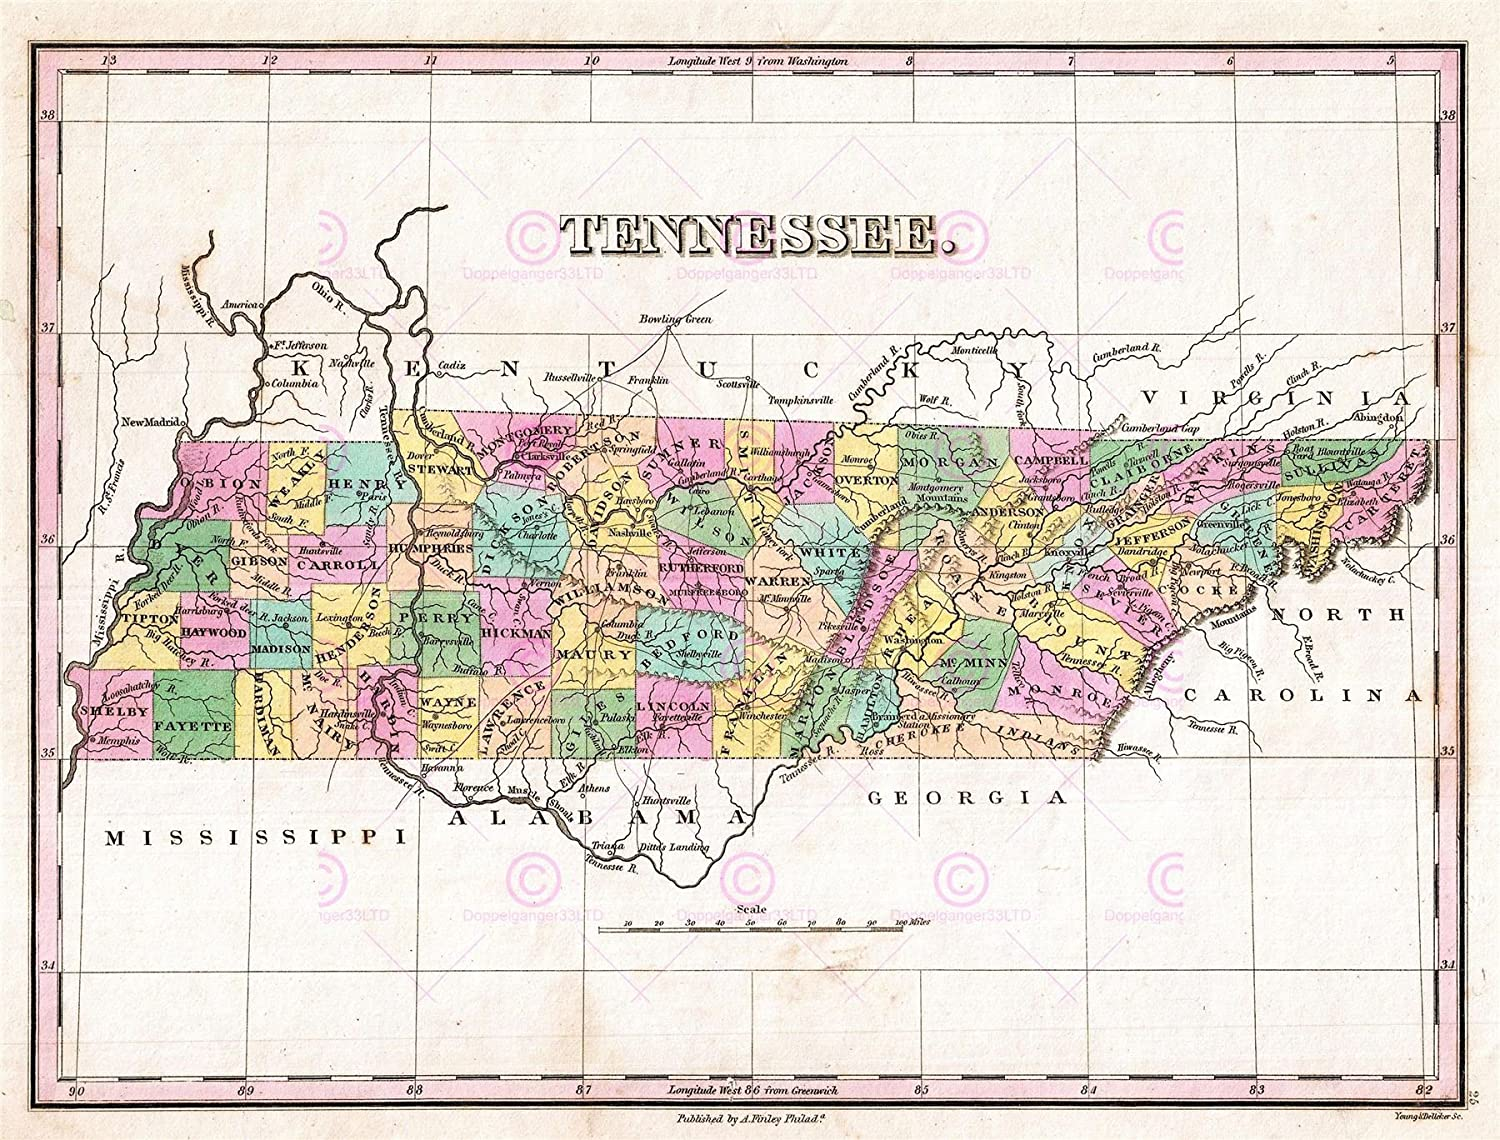 Amazon.com: Doppelganger33LTD MAP ANTIQUE 1827 FINLEY USA ... on georgia state map, state of virginia, state of deseret, state of north dakota, state of philadelphia, state of iowa counties, state of michigan townships, state of wa, state louisiana map, state of ma, state of mo, state of michigan lakes, state of nd, state of chicago, state of jefferson counties, state parks tennessee map, official tennessee state map, state of ok, state of oregon waterfalls, state of california cities,